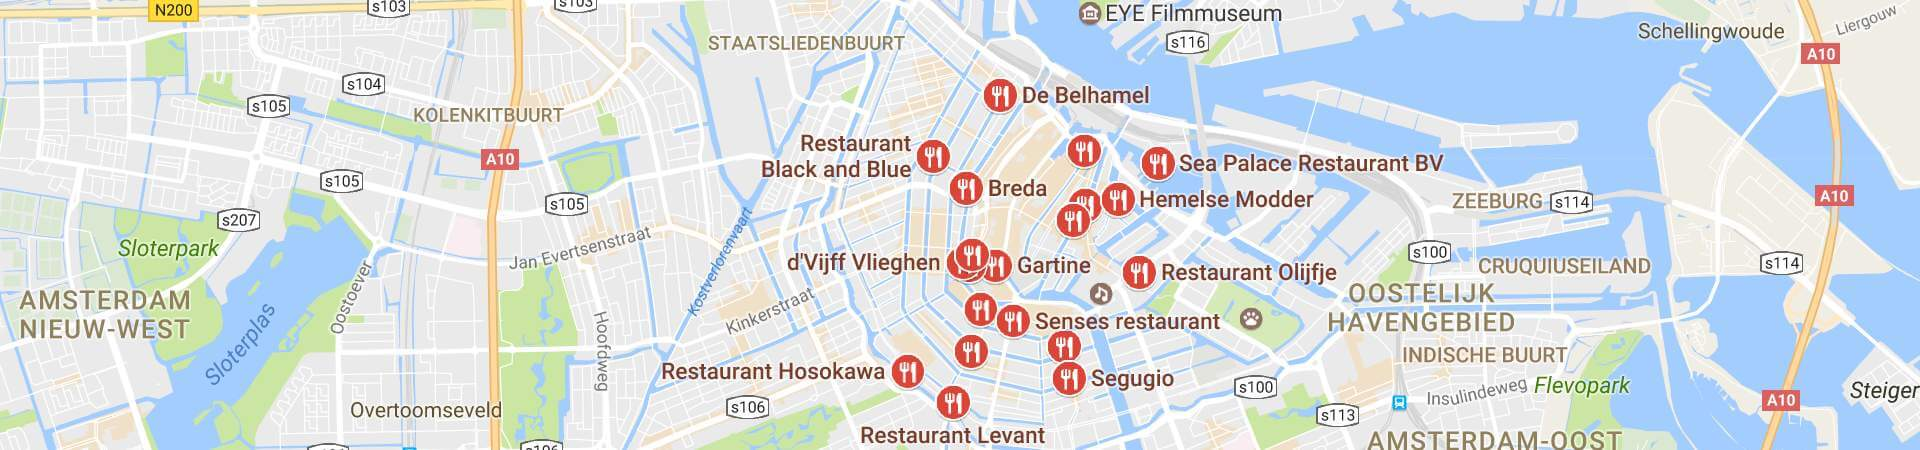 Google Maps met Restaurants in Amsterdam Centrum